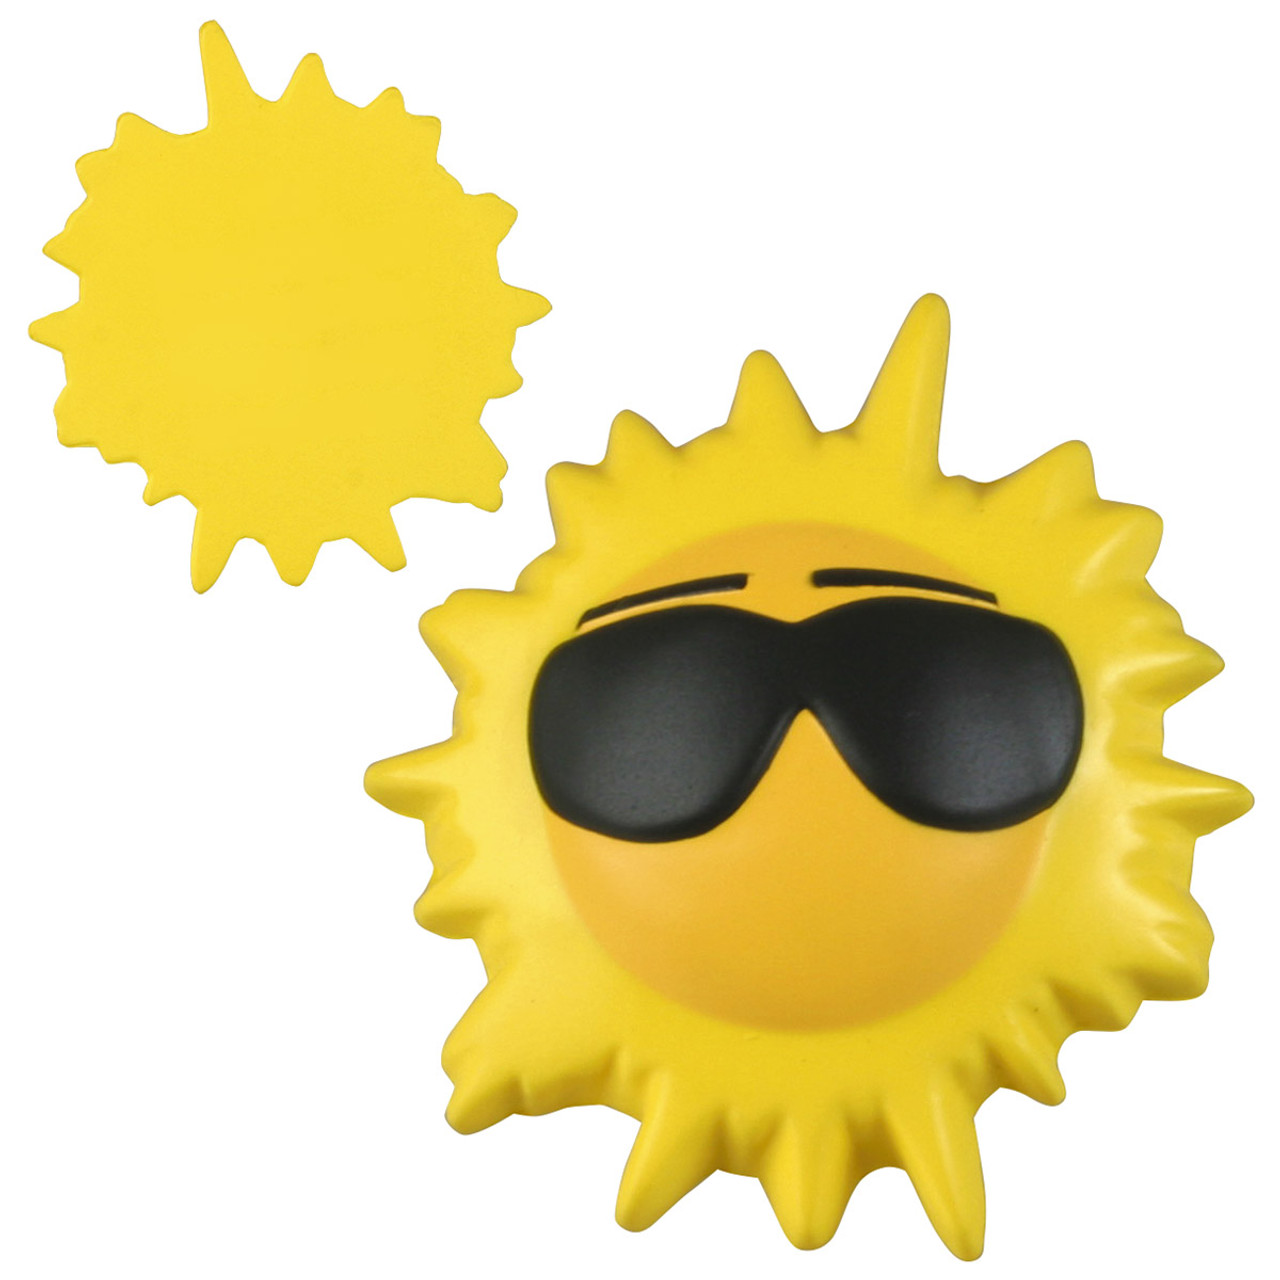 Cool Sun Stress  Reliever Toy. Front has sun wearing sunglasses; back is plain and flat.